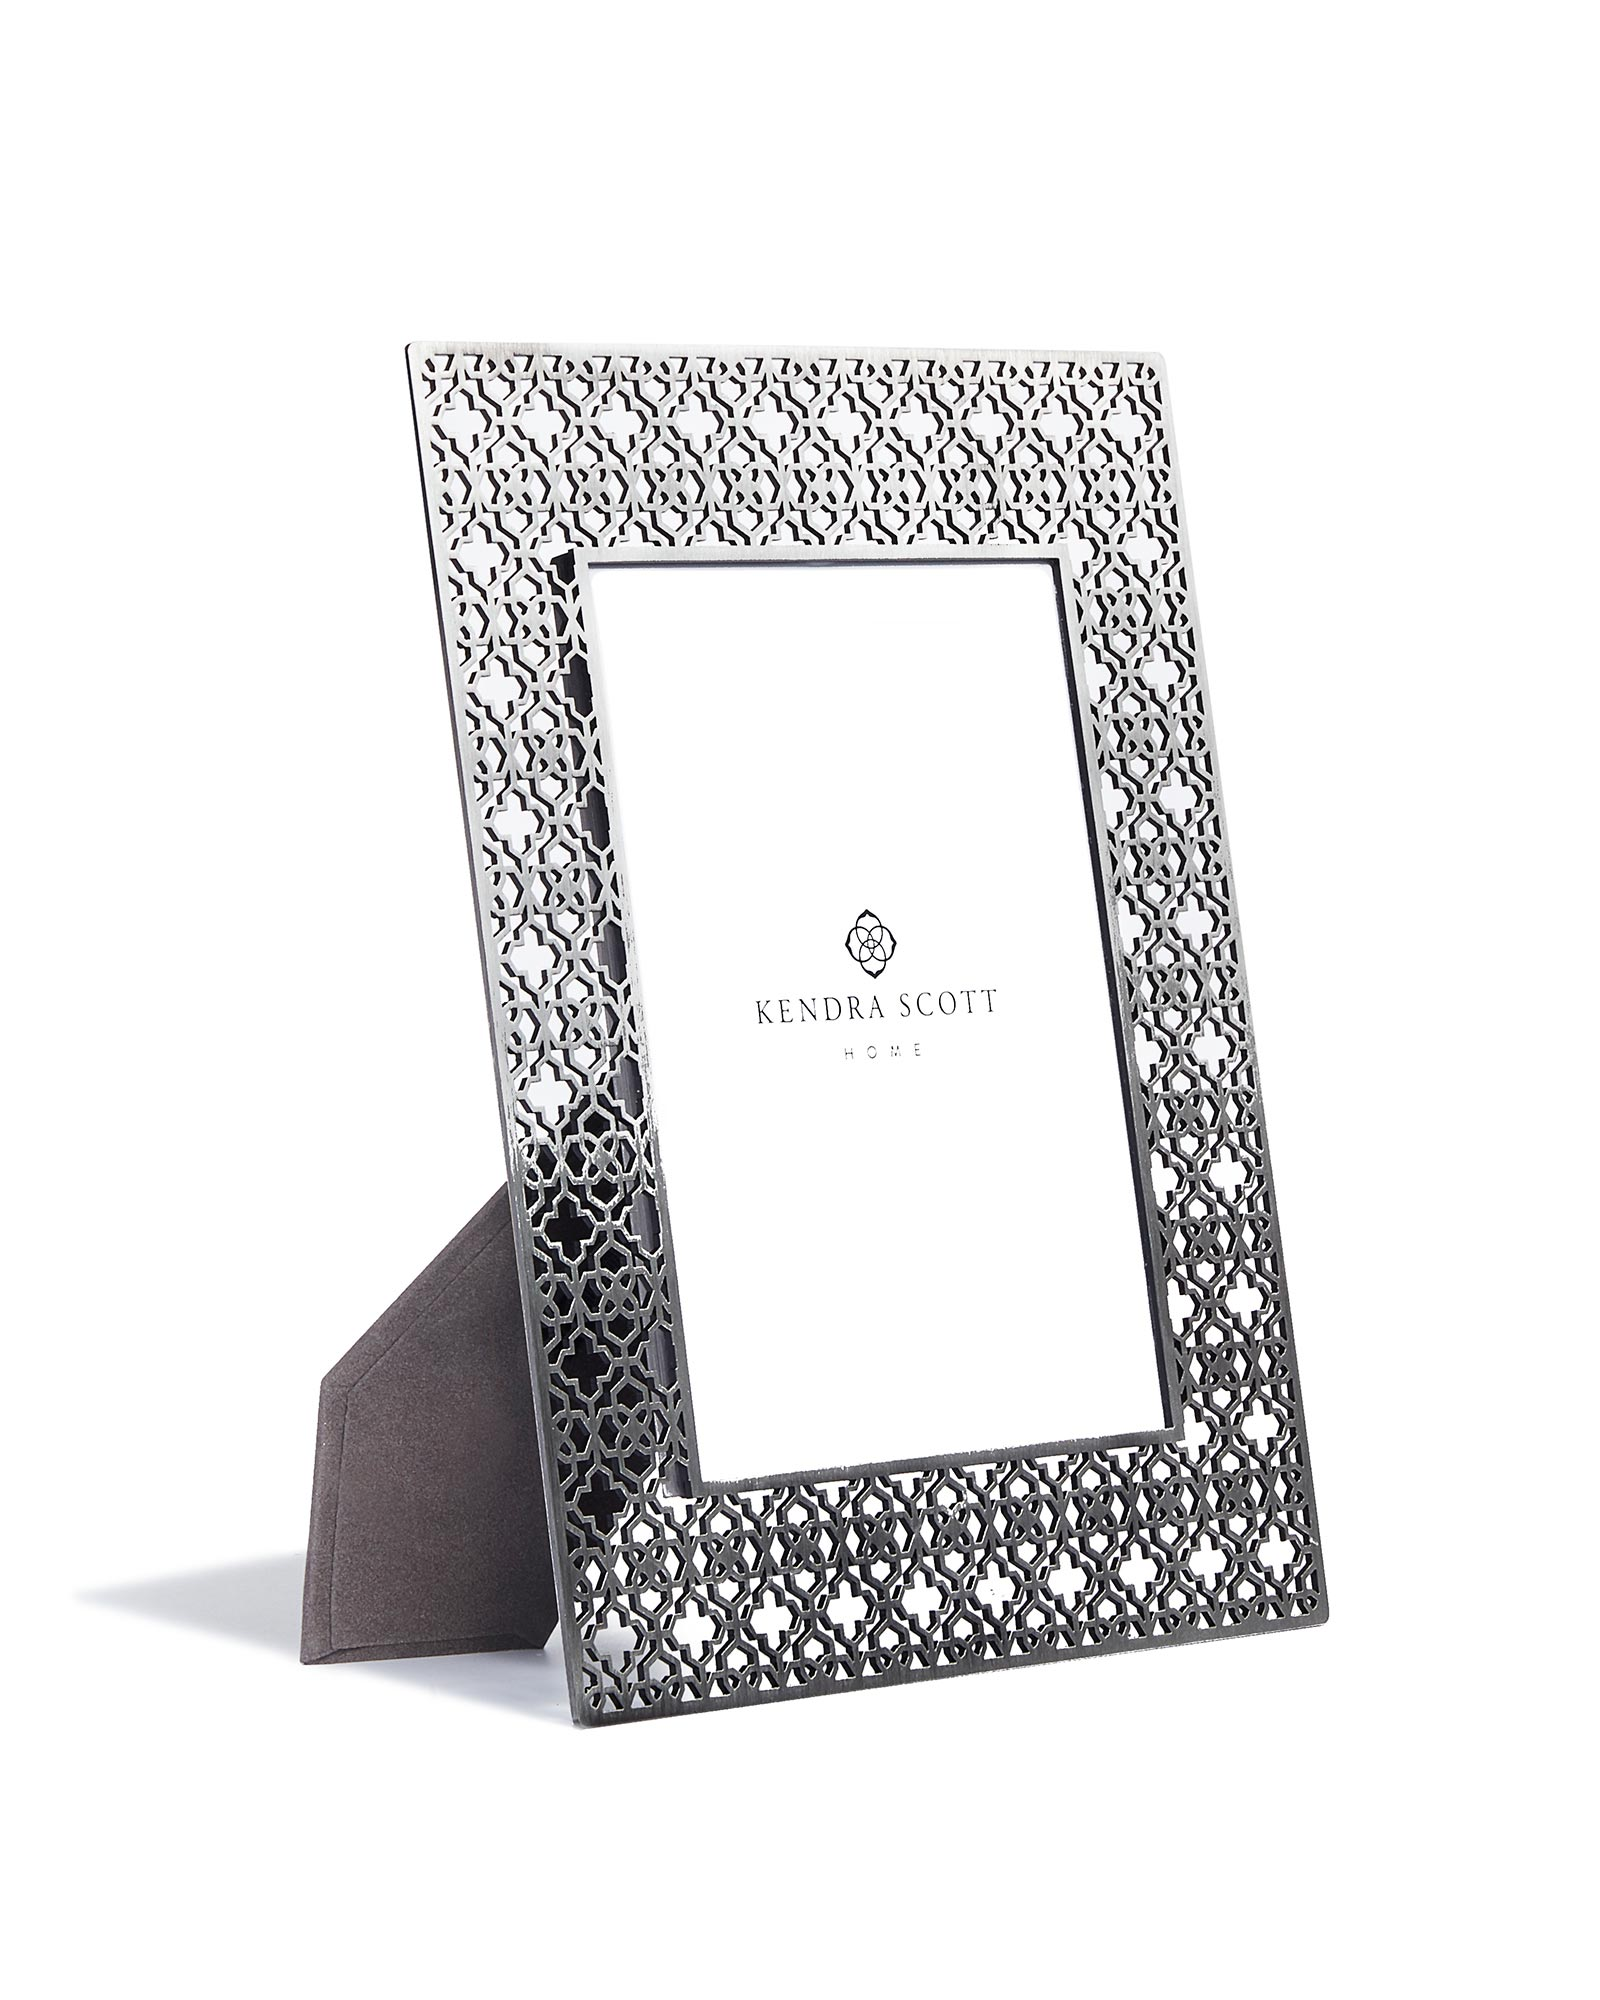 5x7 Filigree Photo Frame in Antique Silver